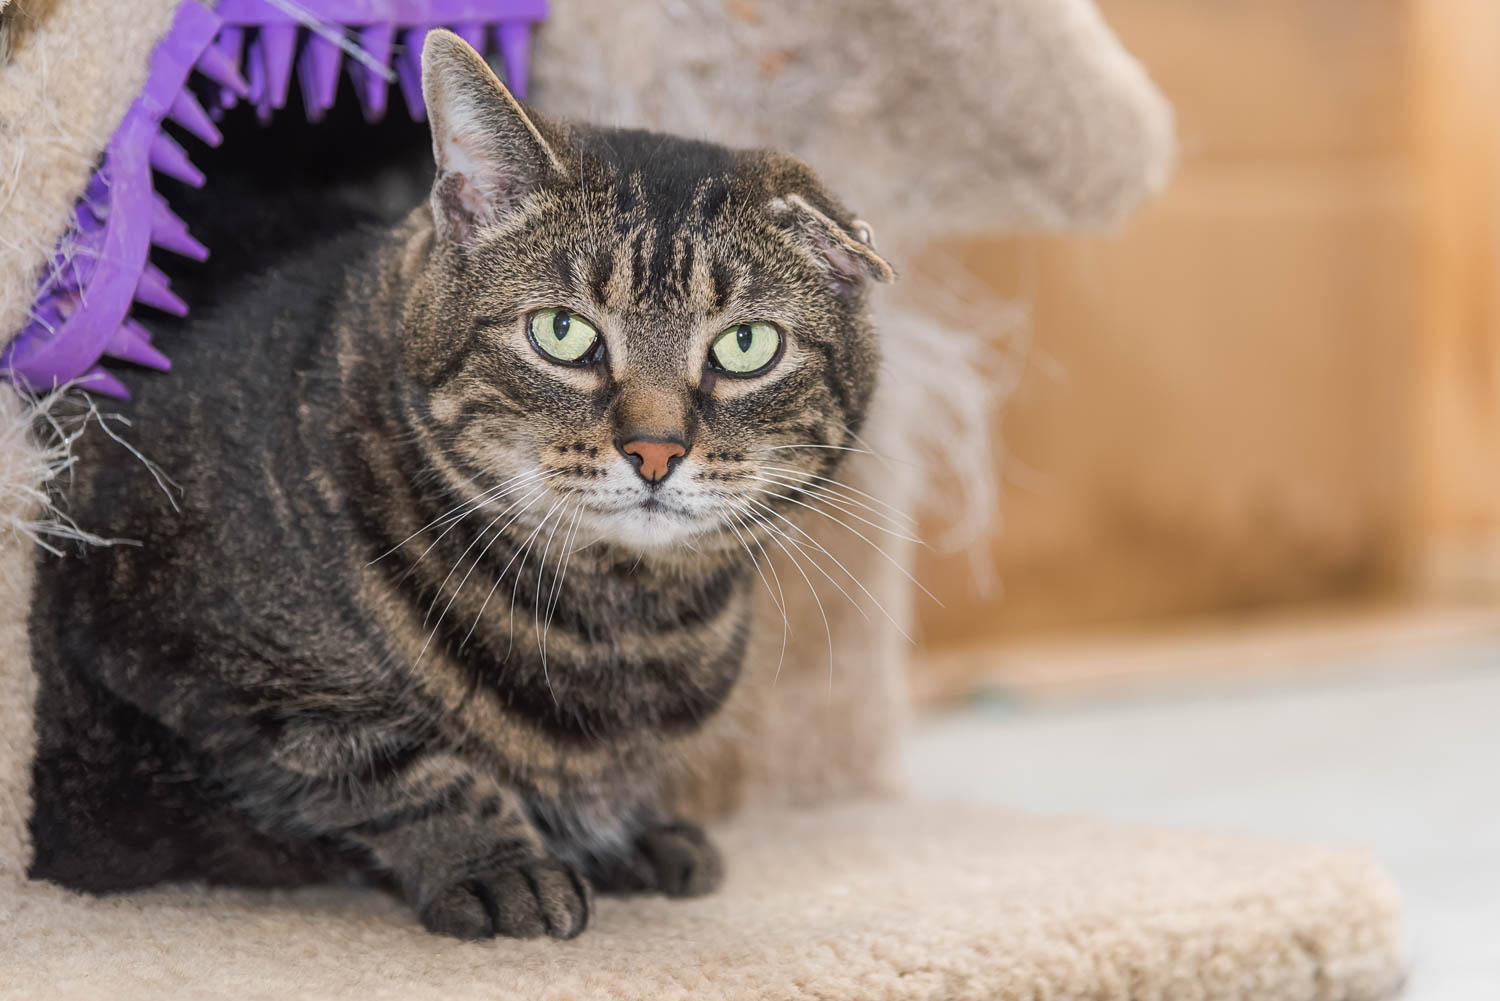 Lisa_Witherley_Happy_Cat_Sanctuary_rescue_cats (21 of 24).jpg